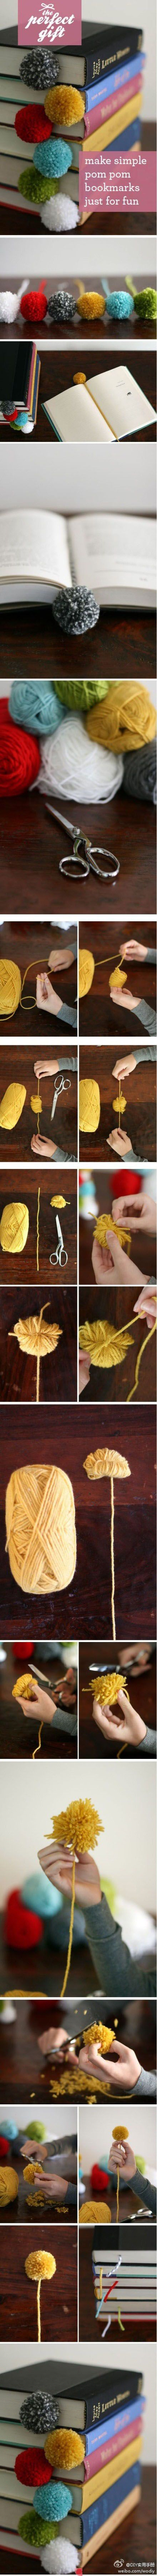 Great idea! I'm gonna make loads of this for my books so I'll always end up in my favorite chapter!                                                                                                                                                      More